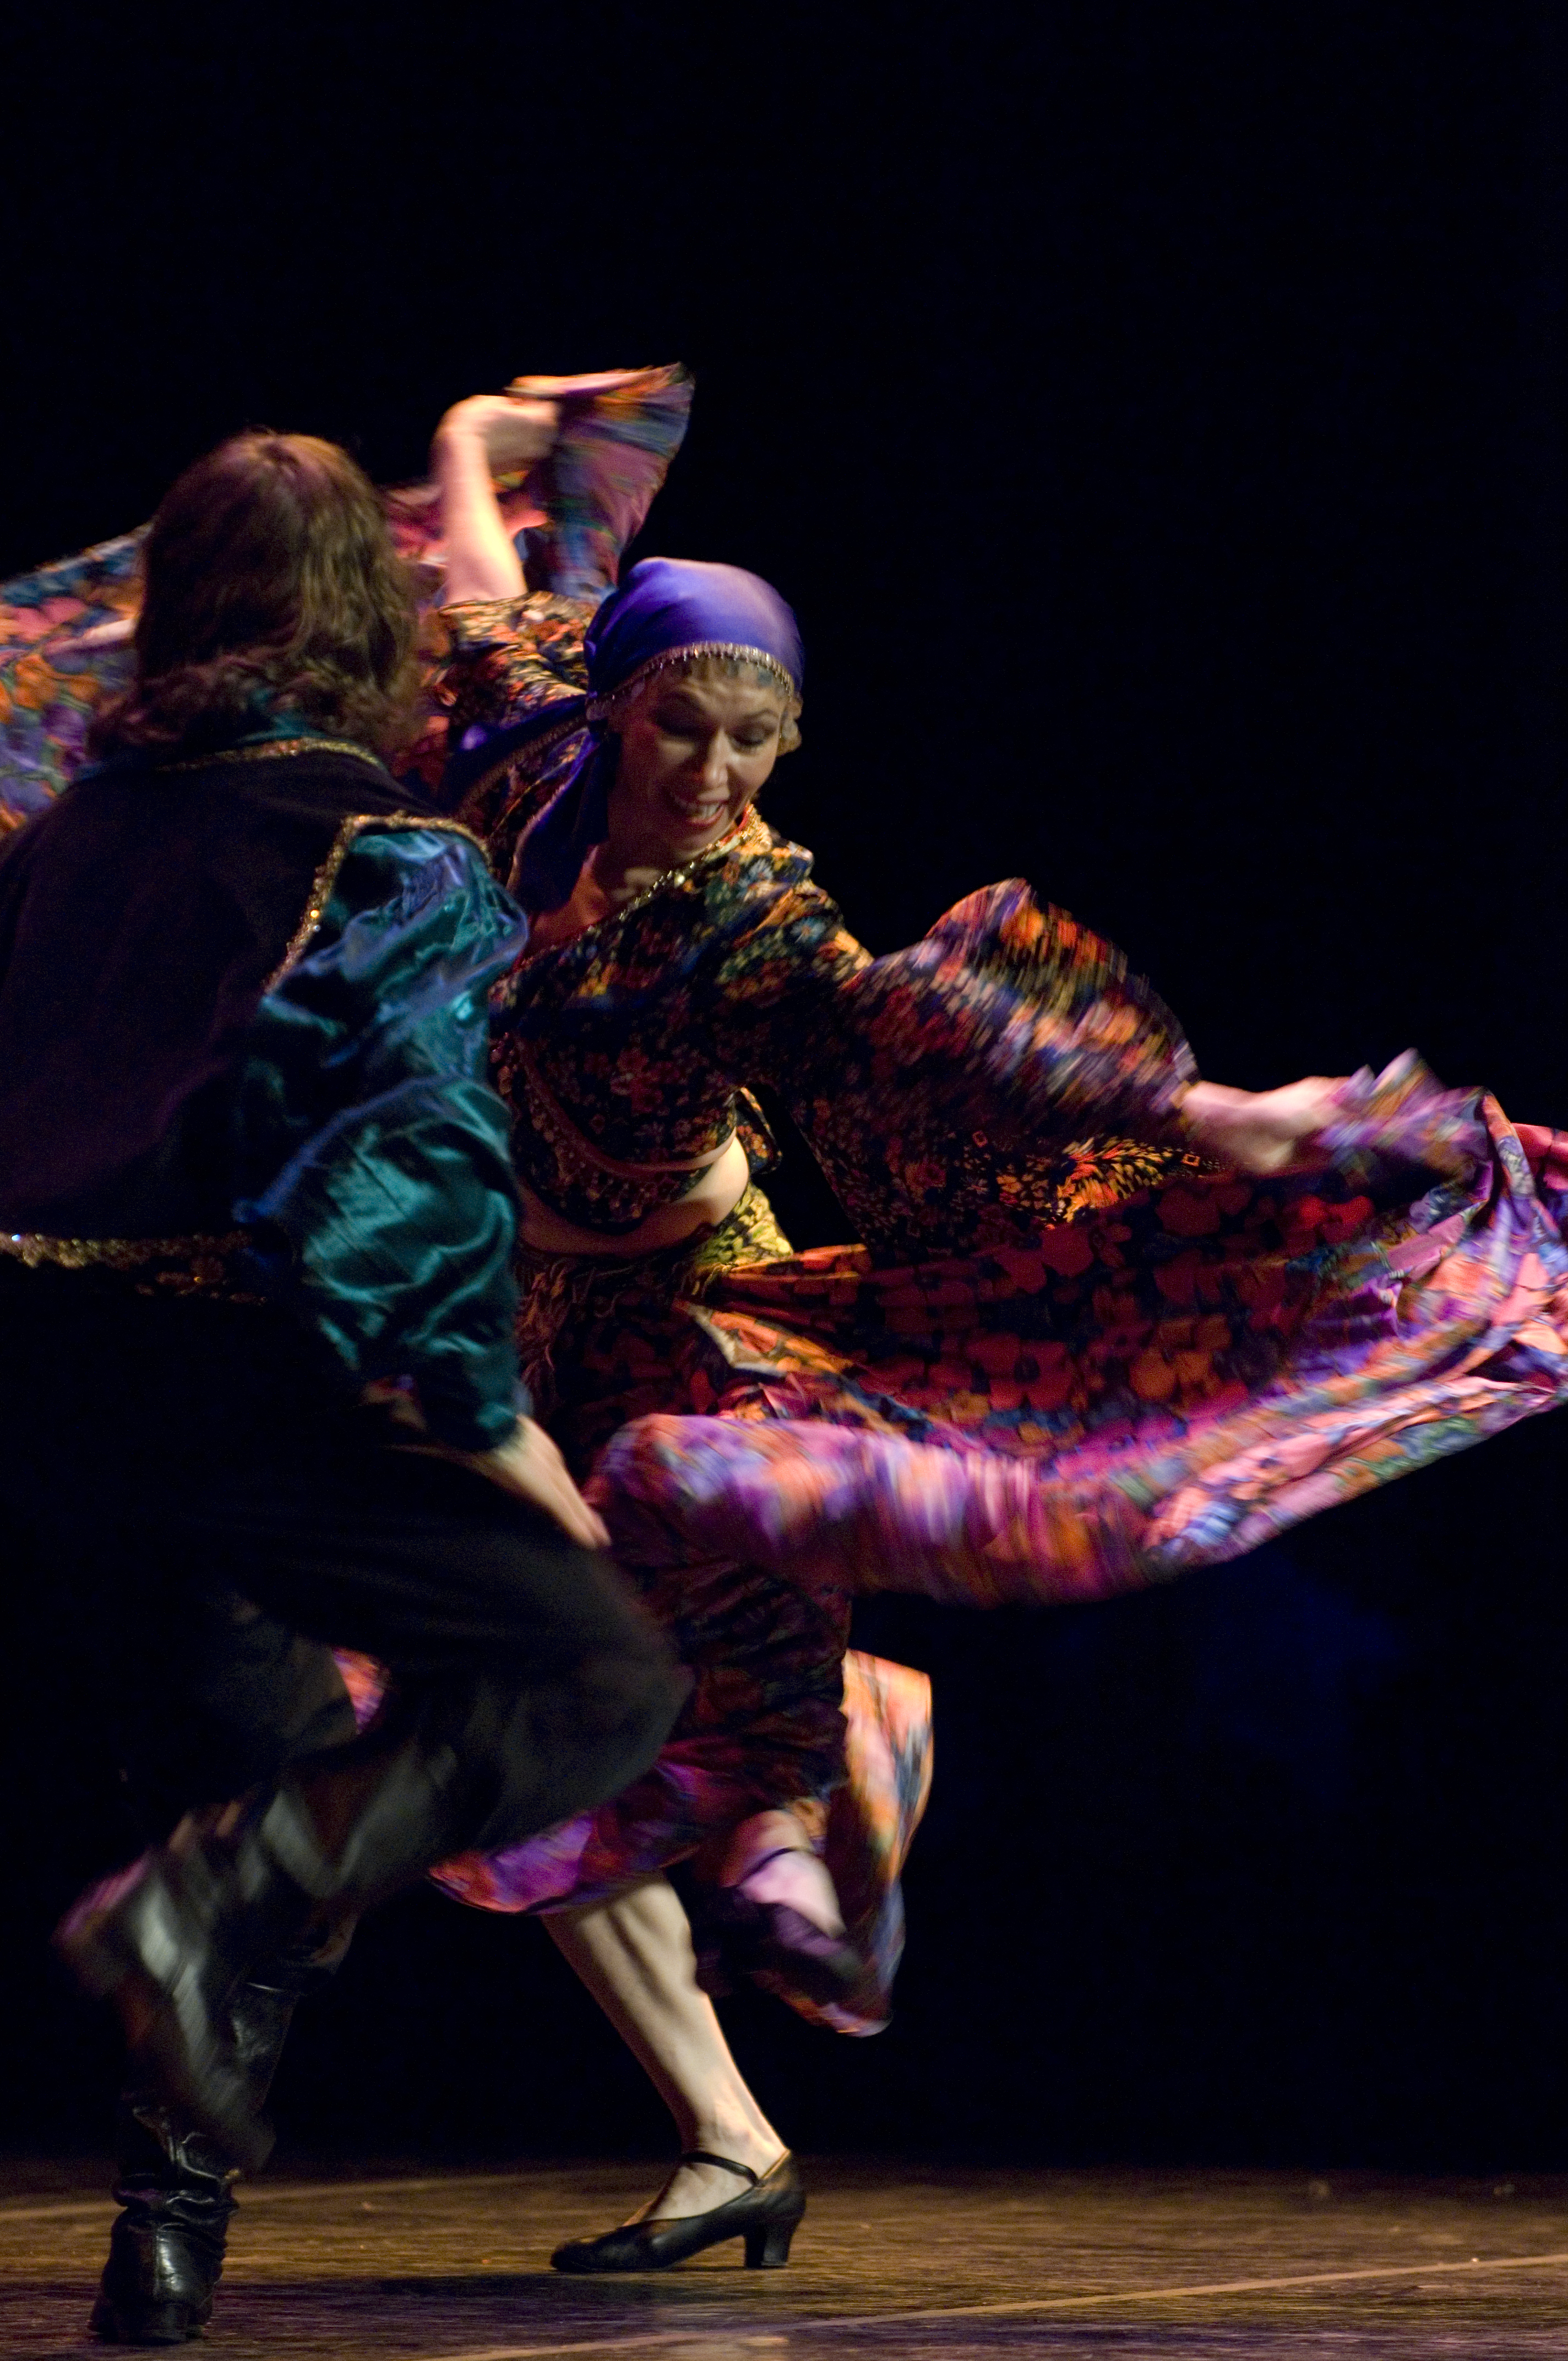 gypsy dance wallpapers high quality download free